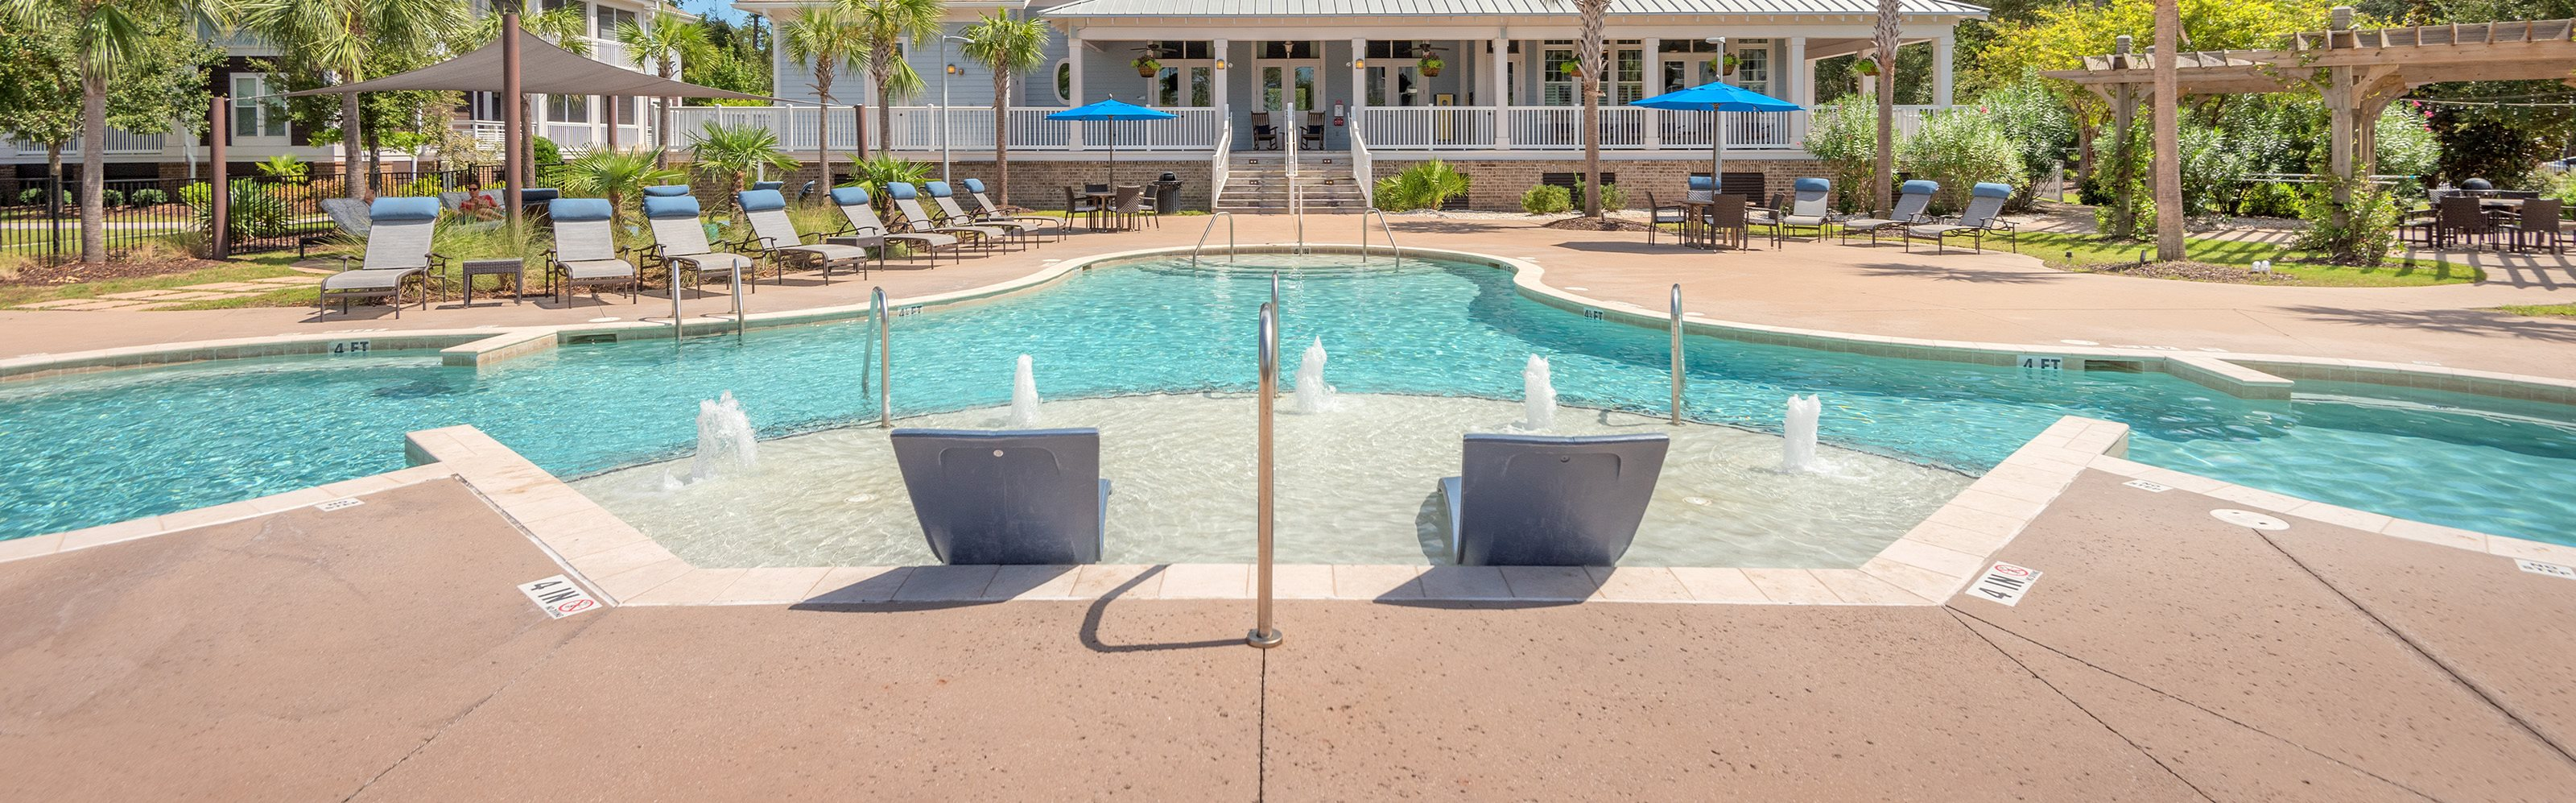 Windward Long Point Apartments pool area